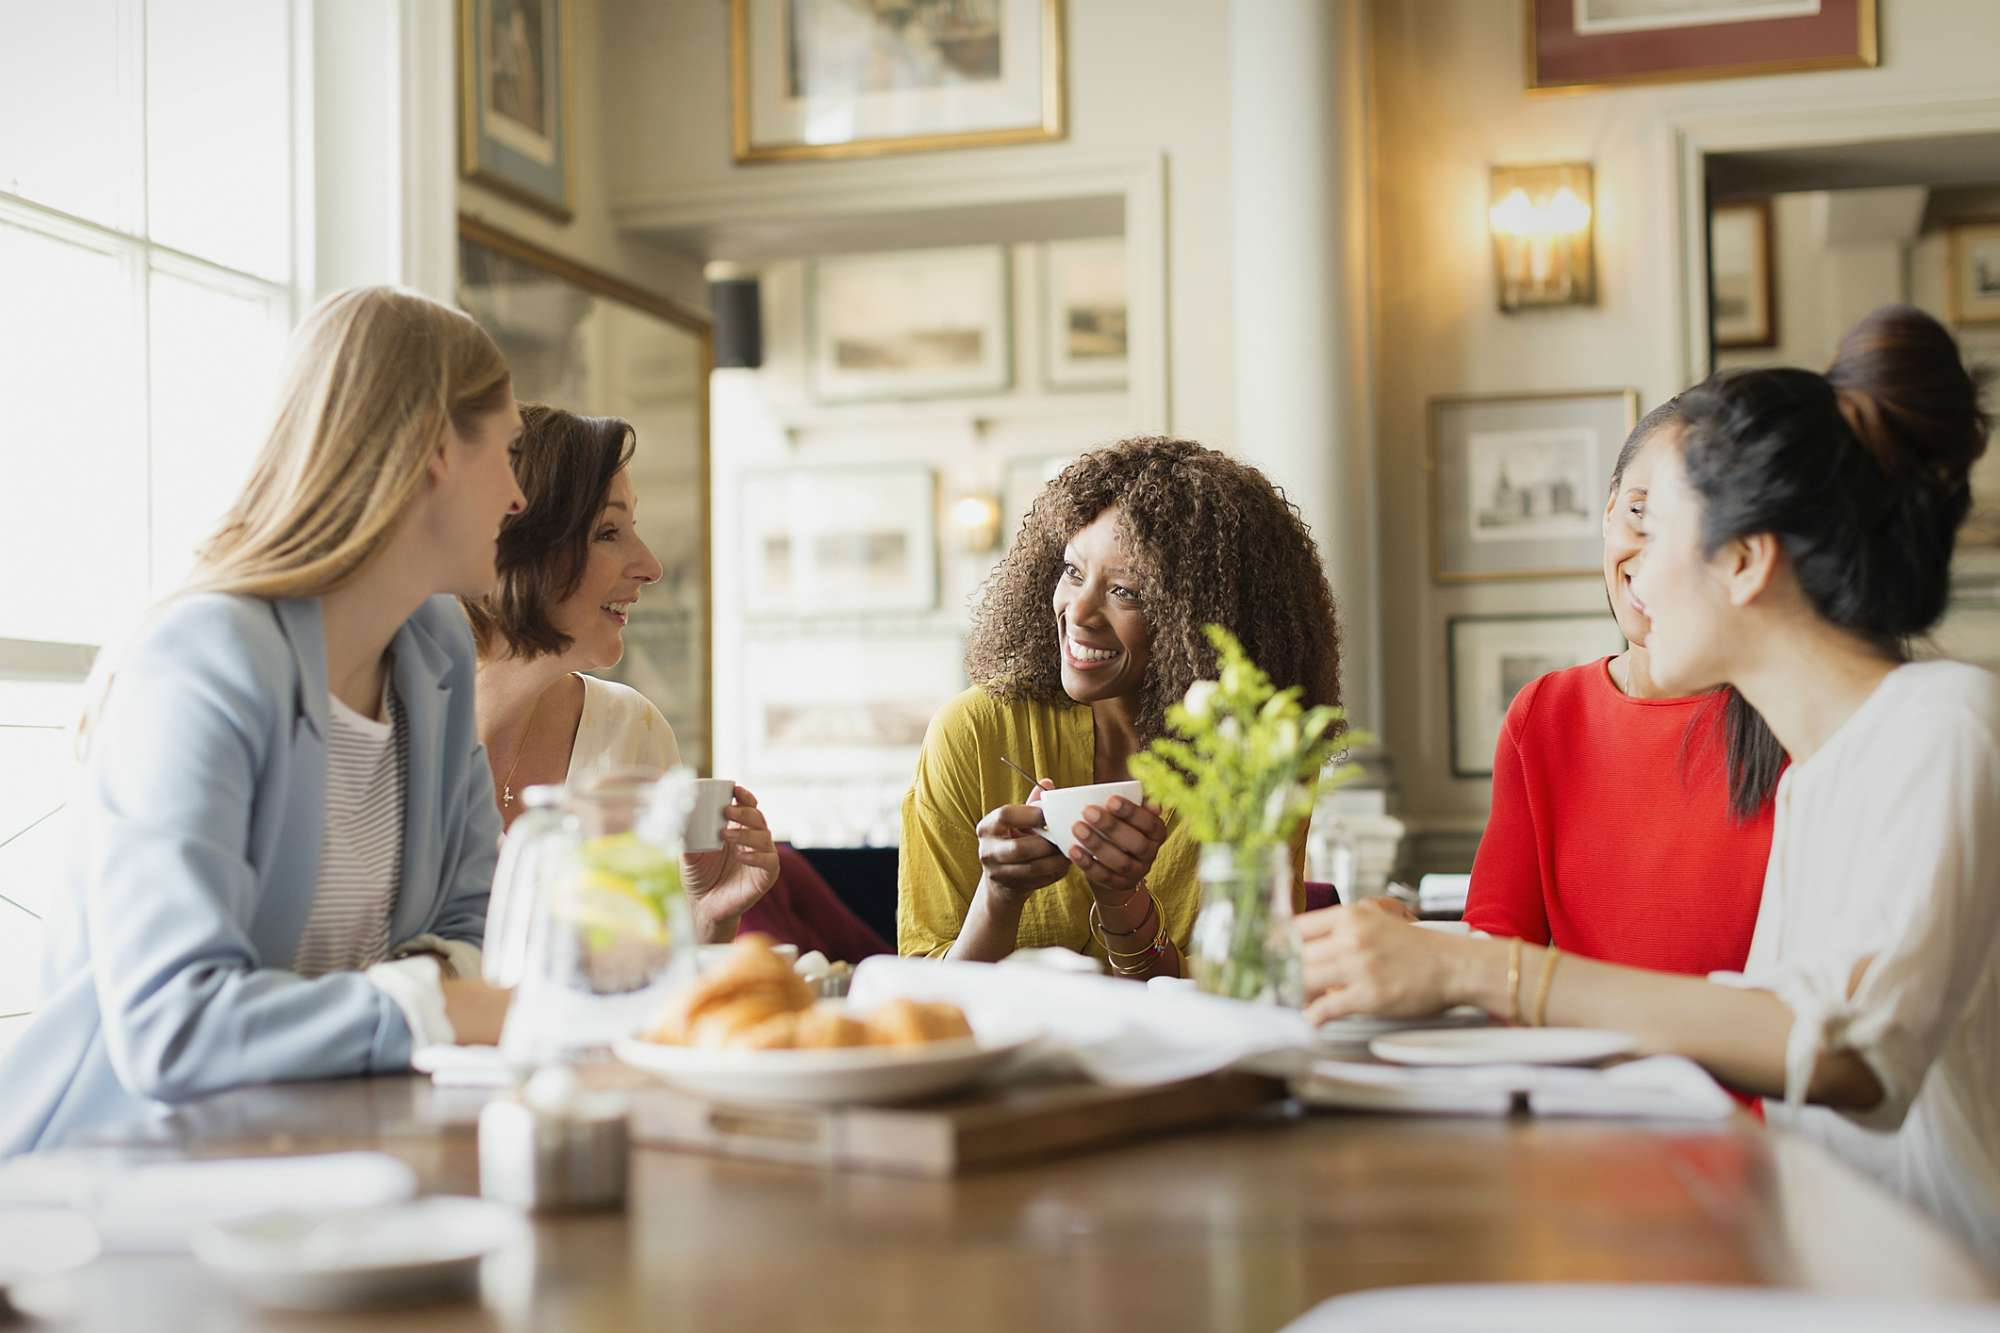 Group of women having coffee and talking